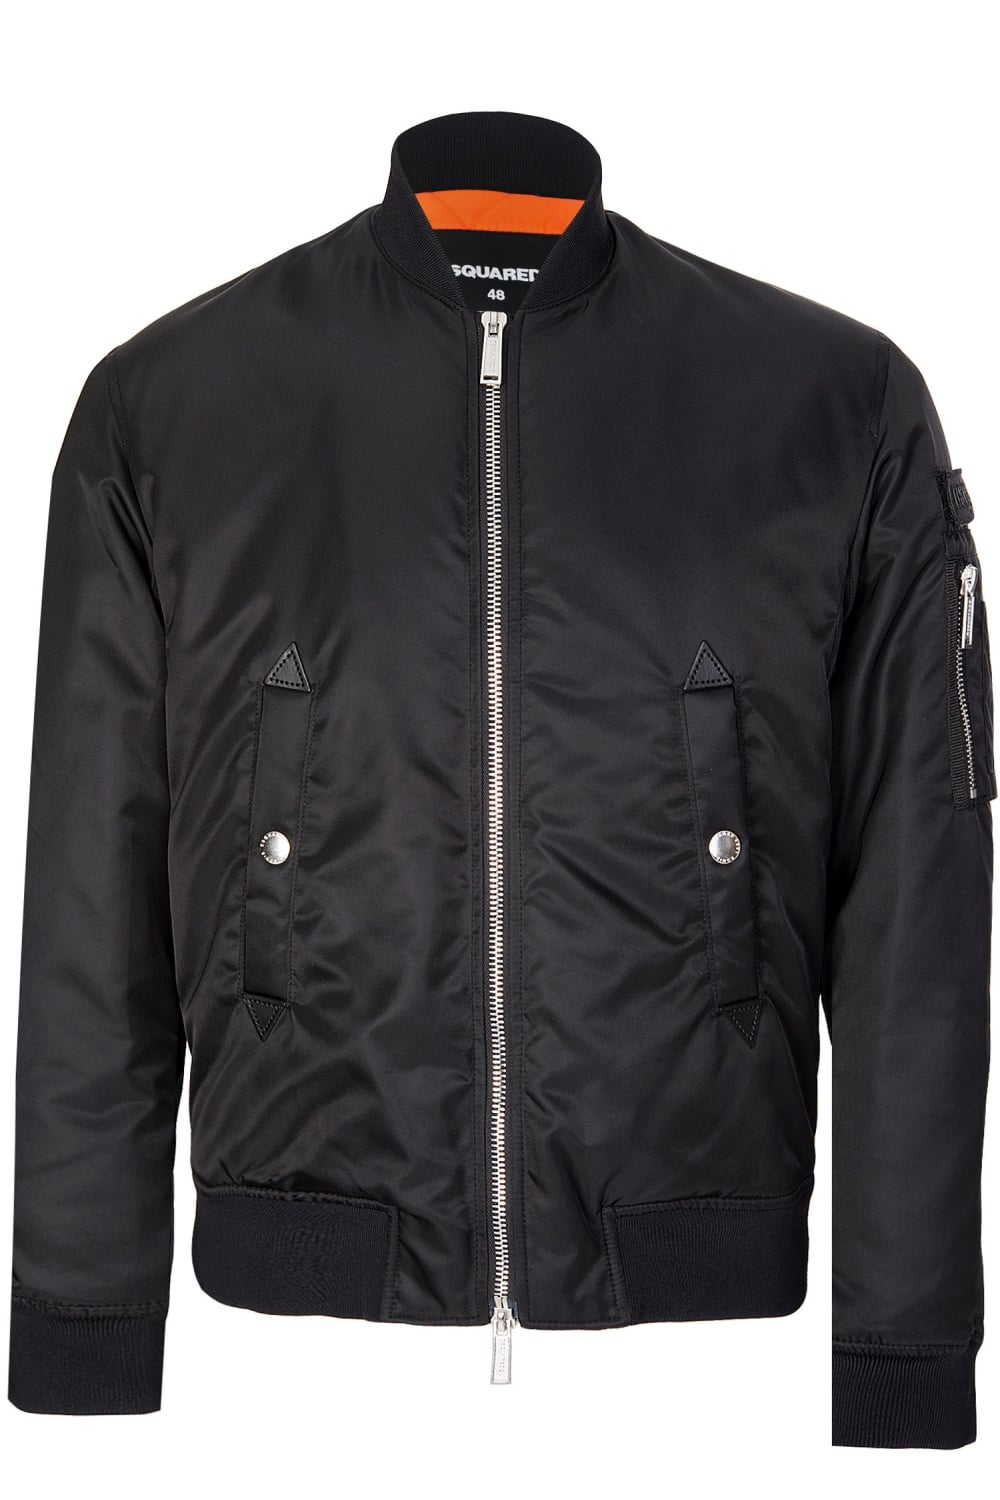 703d73cede2 Dsquared Nylon Bomber Jacket Black